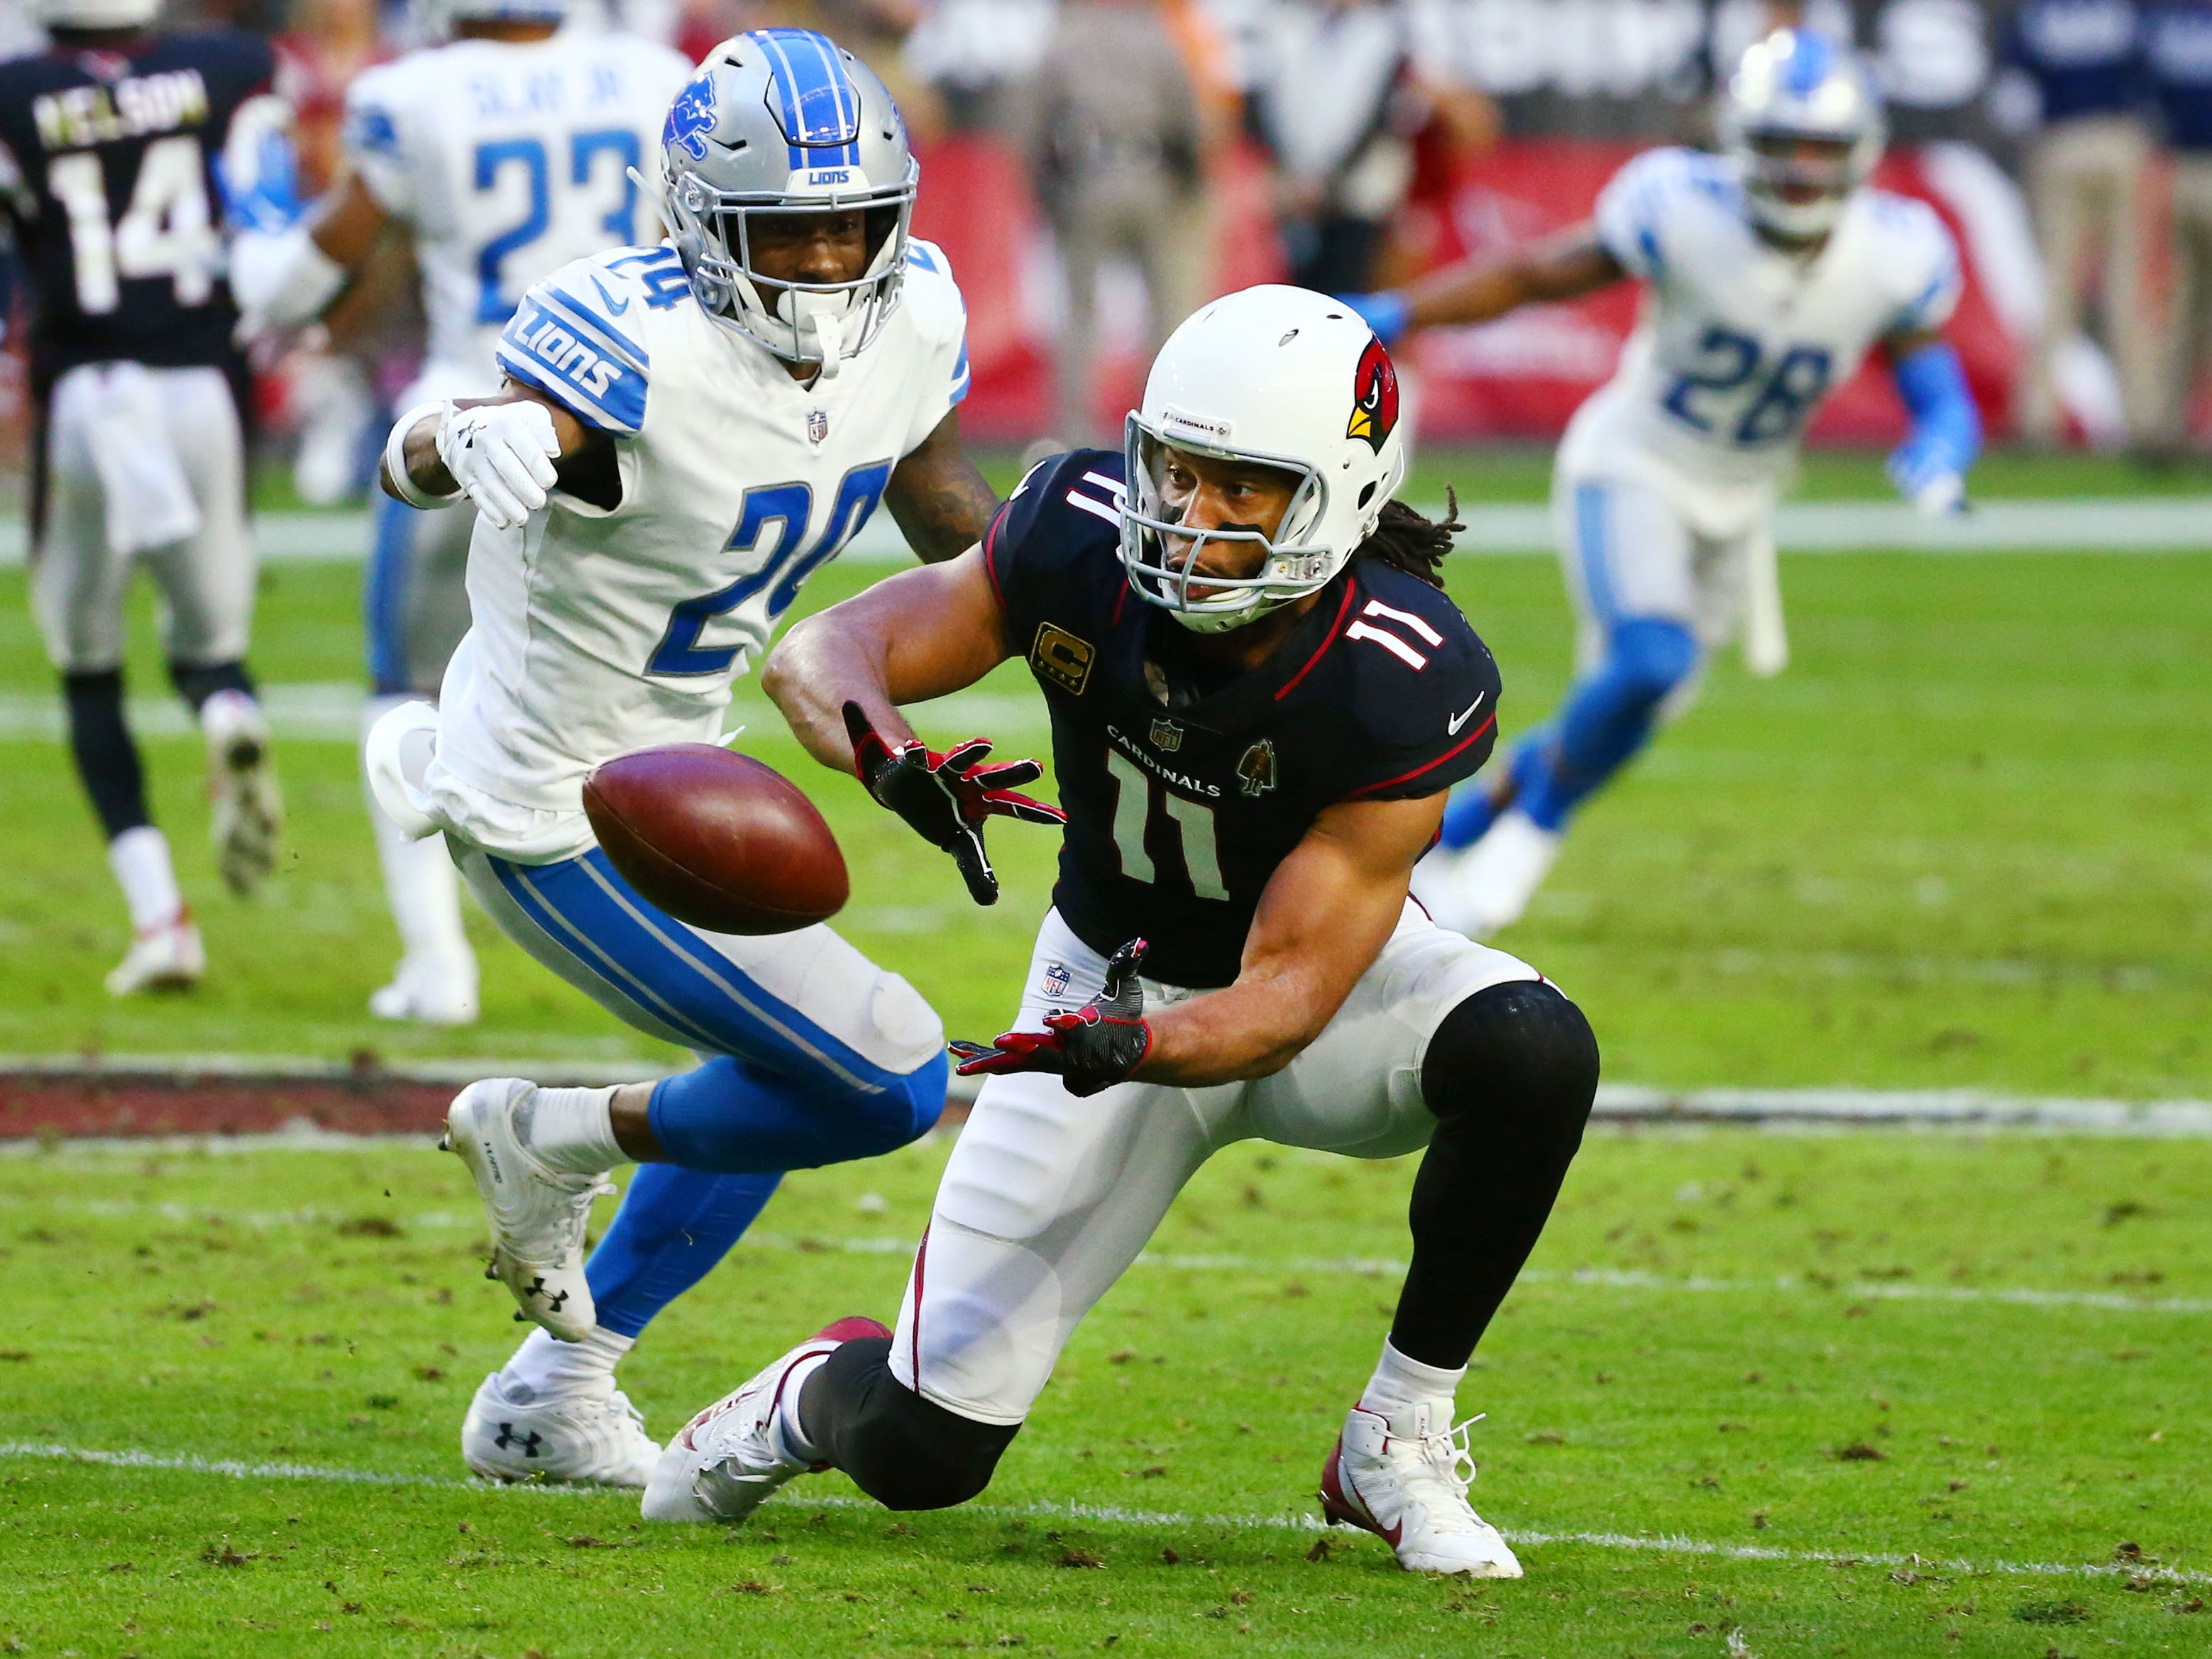 Arizona Cardinals wide receiver Larry Fitzgerald makes his 1,282 career reception against Detroit Lions on Dec. 9 at State Farm Stadium, setting an NFL record for most career receptions with one team, passing Jerry Rice.